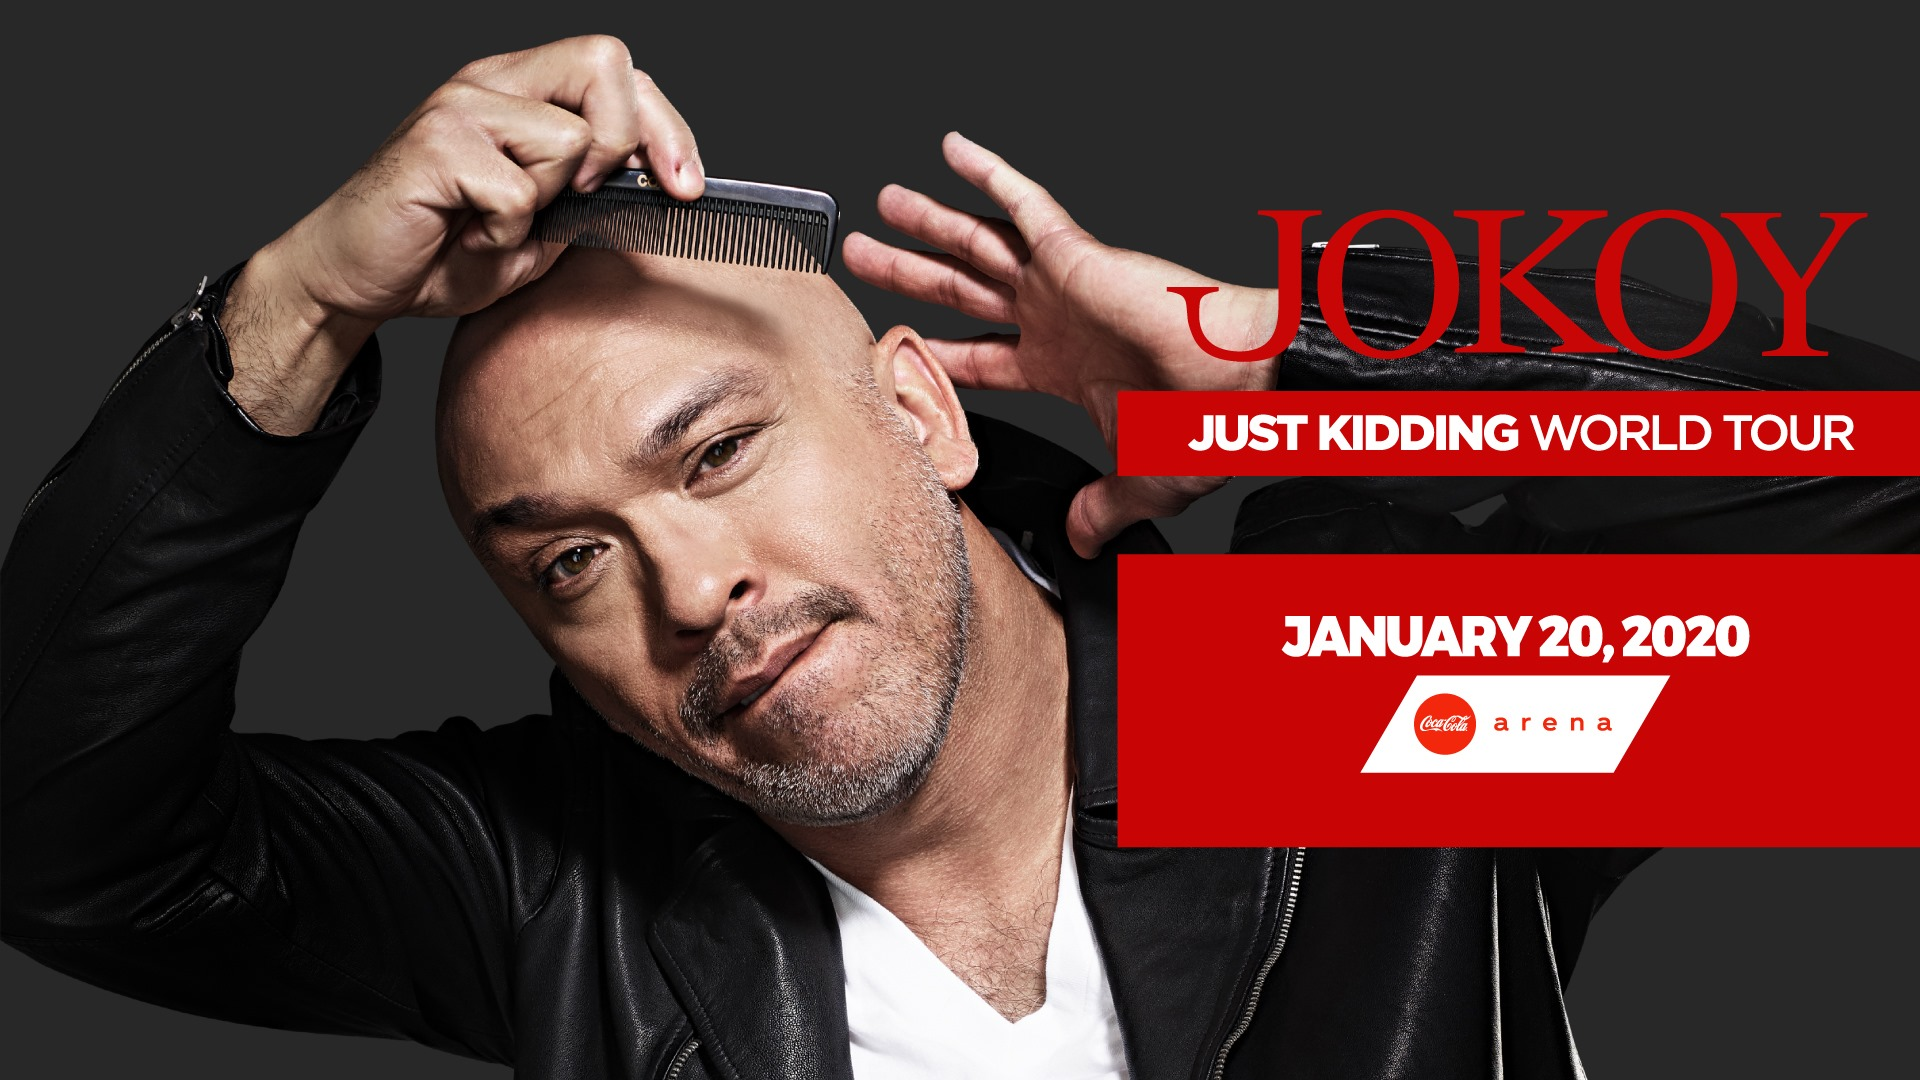 Jo Koy - Just Kidding World Tour LIVE at Coca-Cola Arena